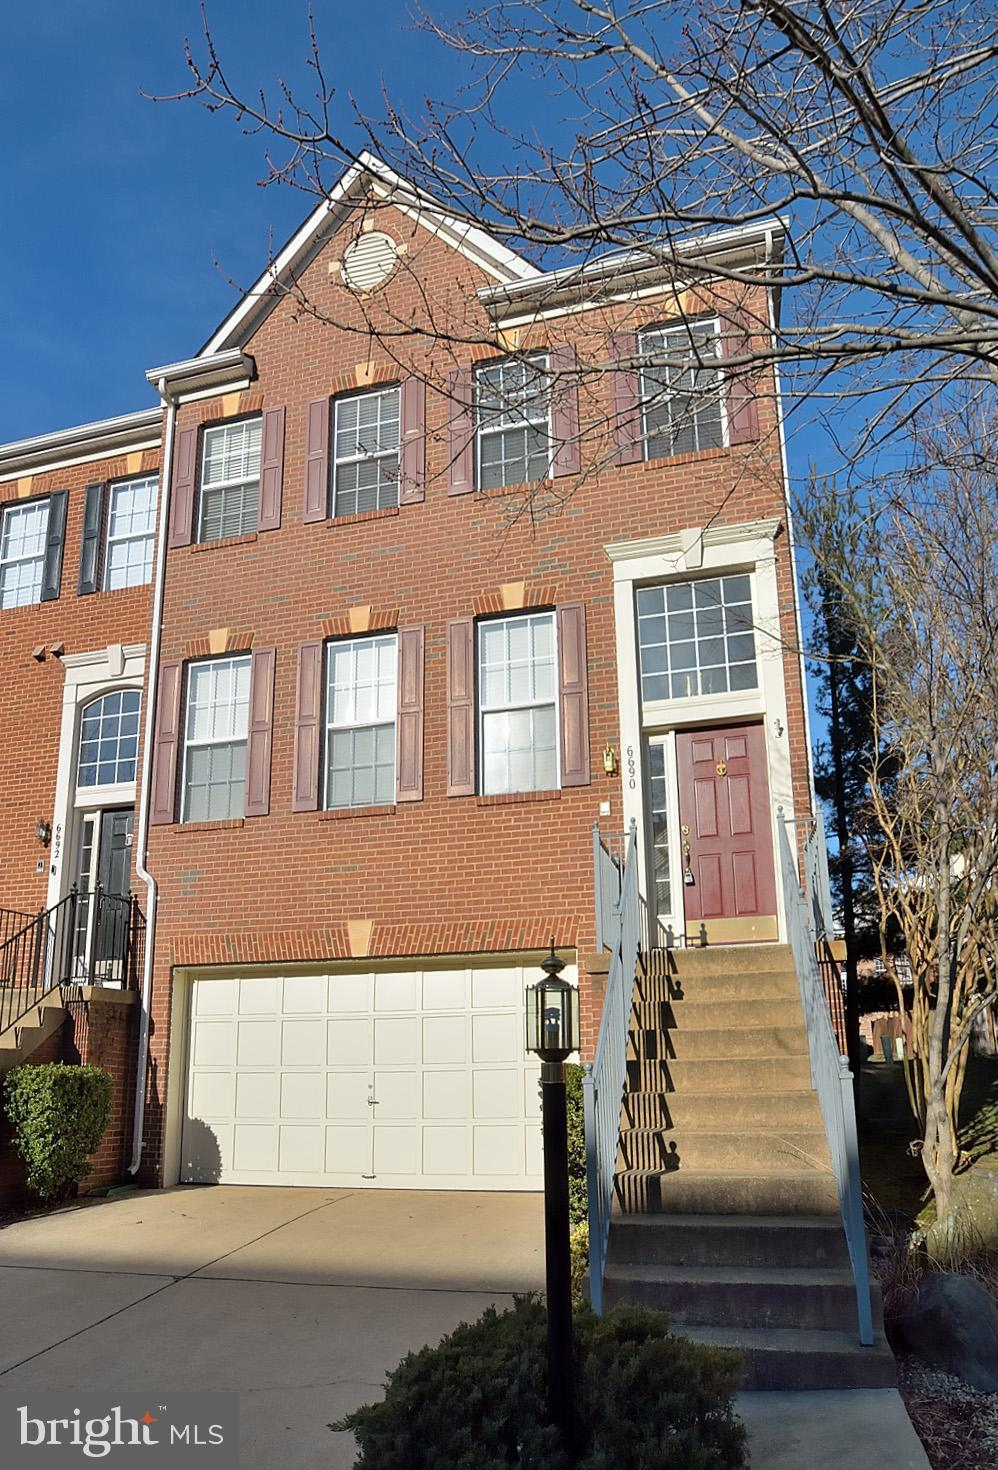 Major price improvement! Open Sun 3/24, 2-4:00.Spacious and sparkling end unit 2-car garage townhome. 3-level bump out. Huge kitchen features new stainless appliances, gas fireplace, hardwood, center island, pantry, ceiling fan & 2 seating areas. 3-lvl bump out give extra 10X11 space. Slider to deck. Huge owner's bedroom w vaulted ceiling, 2 walk-in closets. Light bright bath w soaking tub, separate shower, double vanity. Convenient washer & dryer on bedroom lvl. 2 other bedrooms & full bath complete upper lvl. Lower level family room w gas fireplace, half bath, oversized storage closet. Bump out gives that extra space. Sliders to patio & fenced yard. Everybody loves Kingstowne with its 2 pools, 2 fitness centers, trails, town center, restaurants, movie theater, summer outdoor market & concerts.